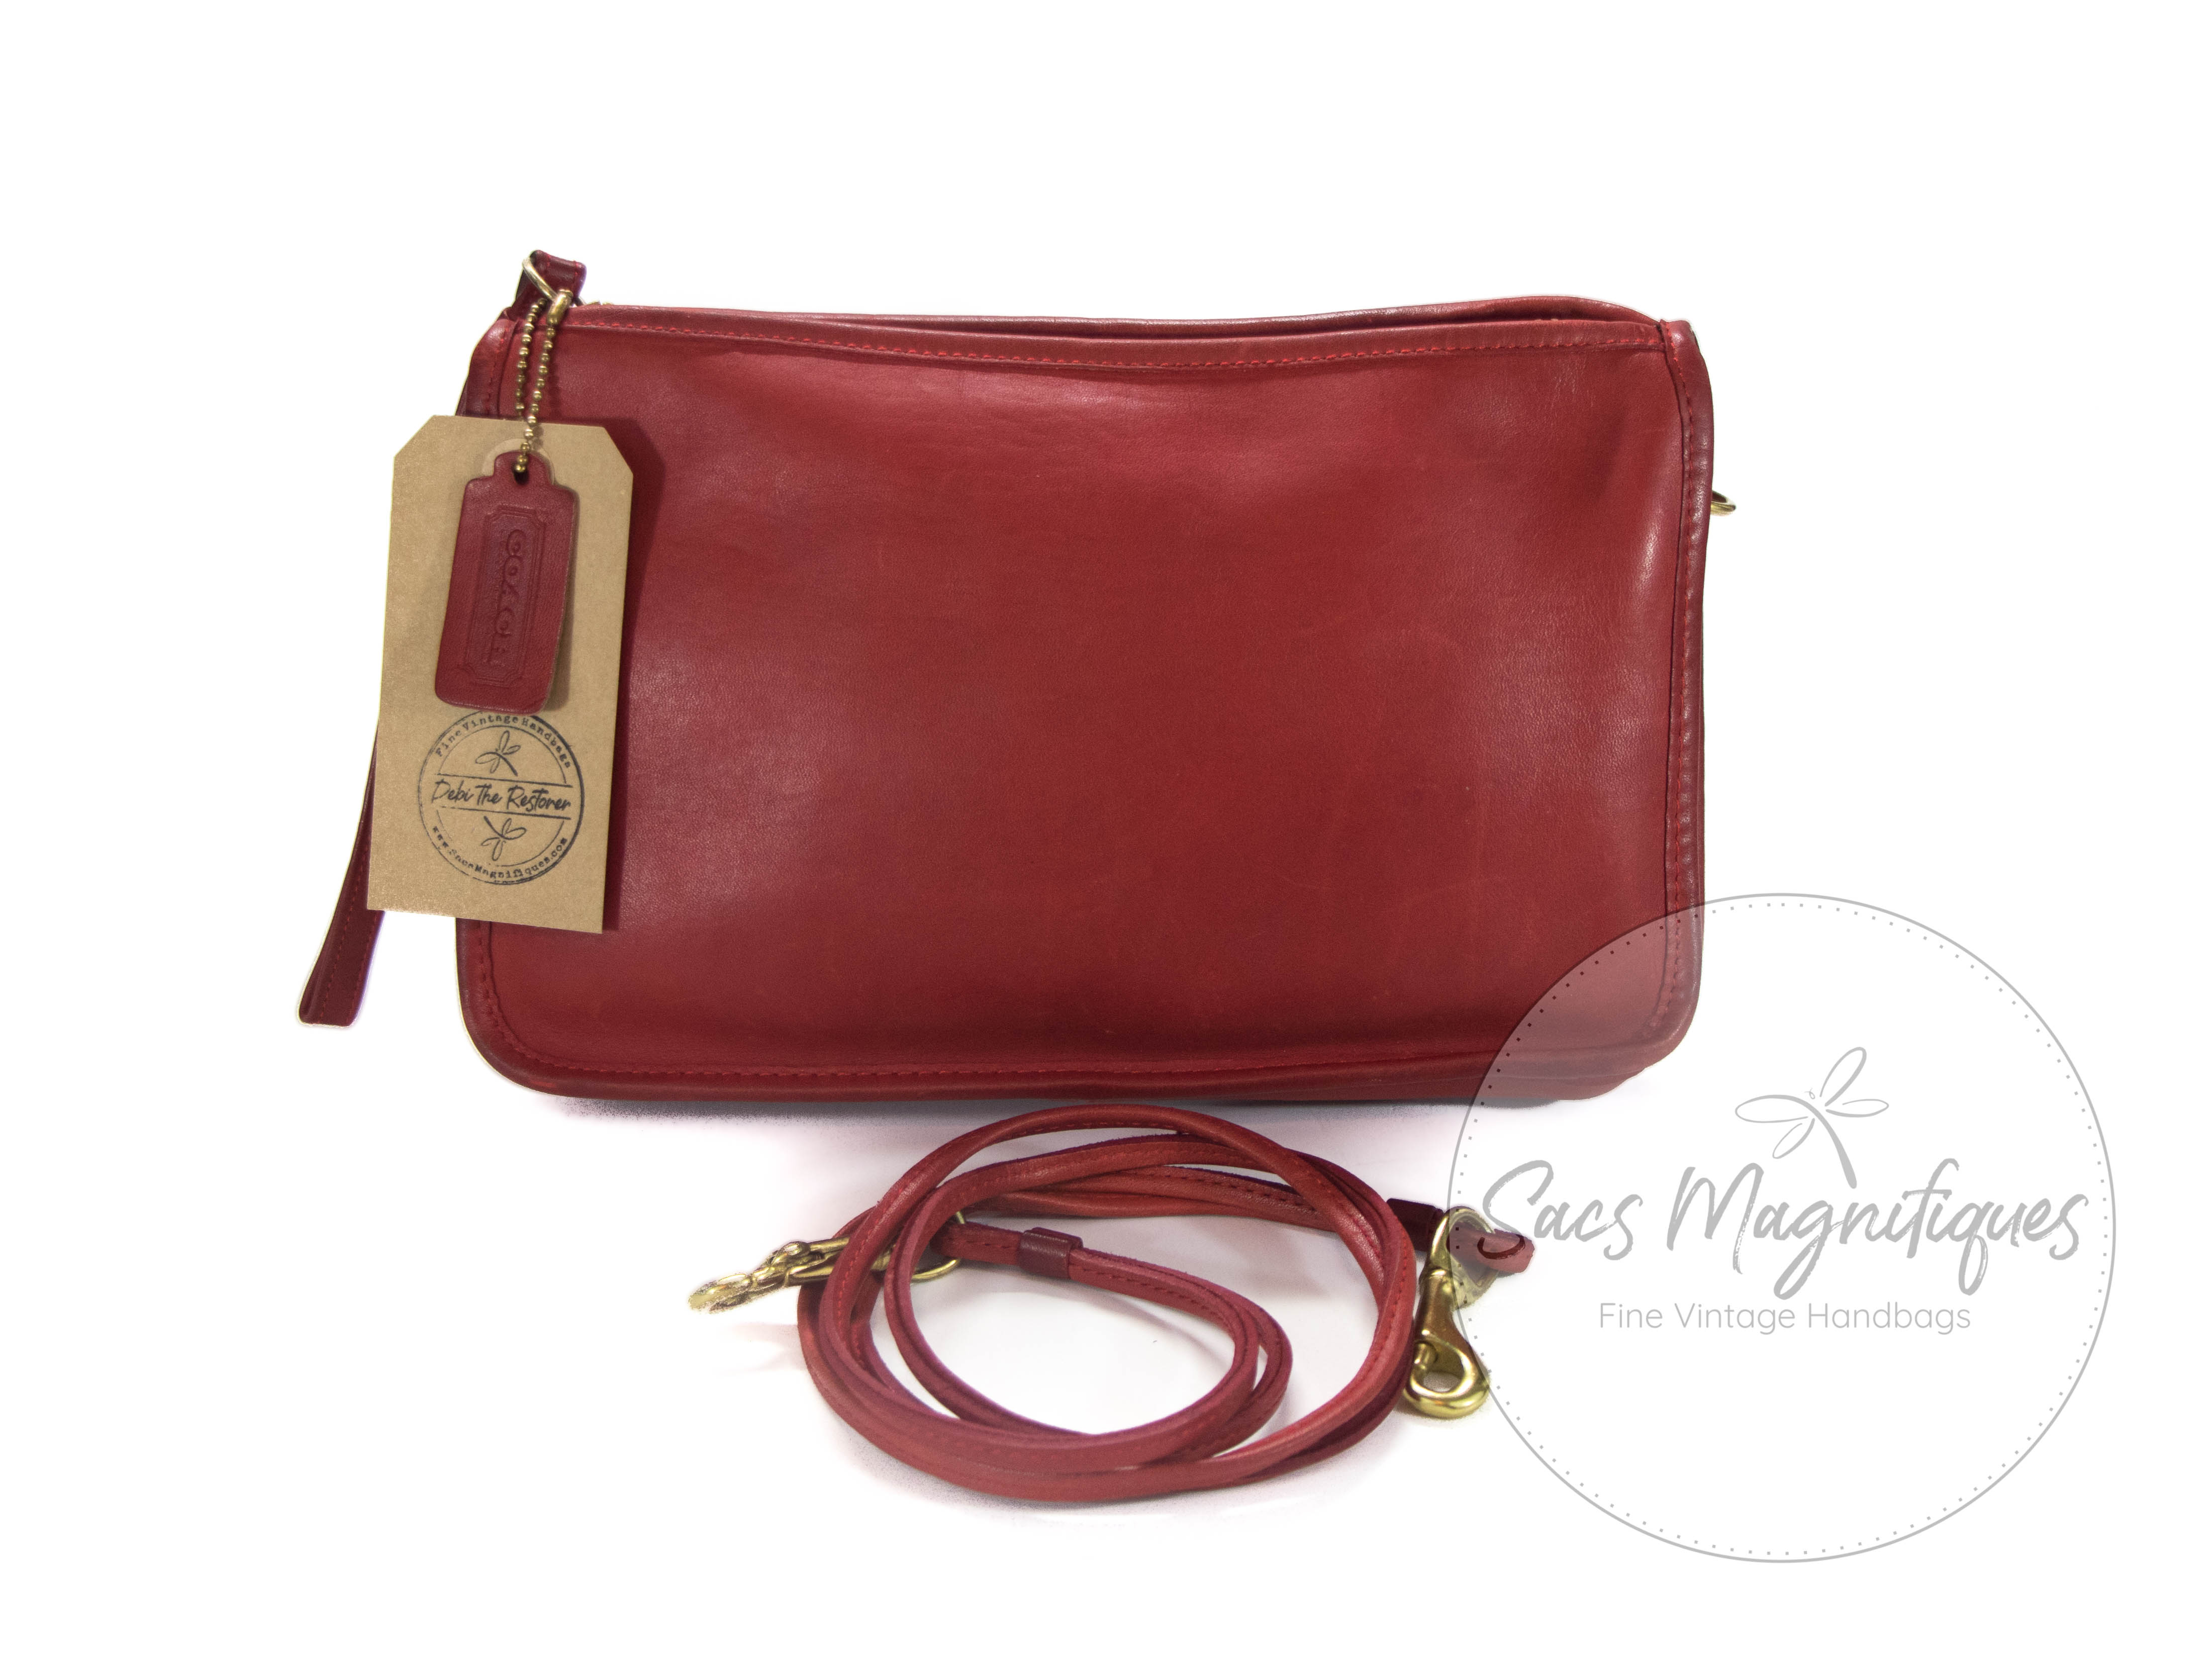 Vintage Coach Bag Basic Convertible Clutch Red